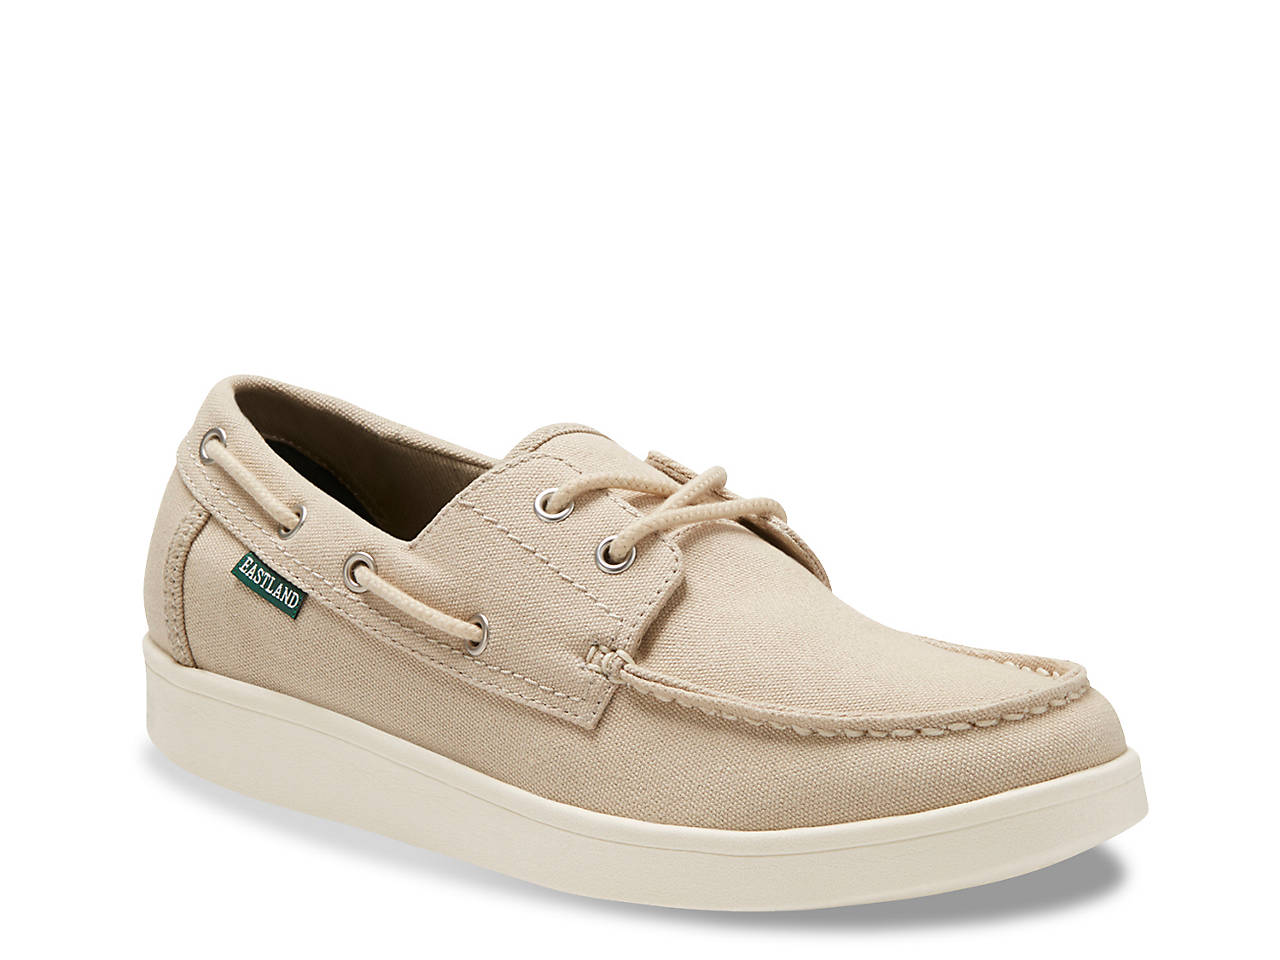 sale really Eastland Popham Men's Boat ... Shoes clearance Inexpensive buy cheap 2014 unisex store online clearance 2014 Vbt7nlg0uw